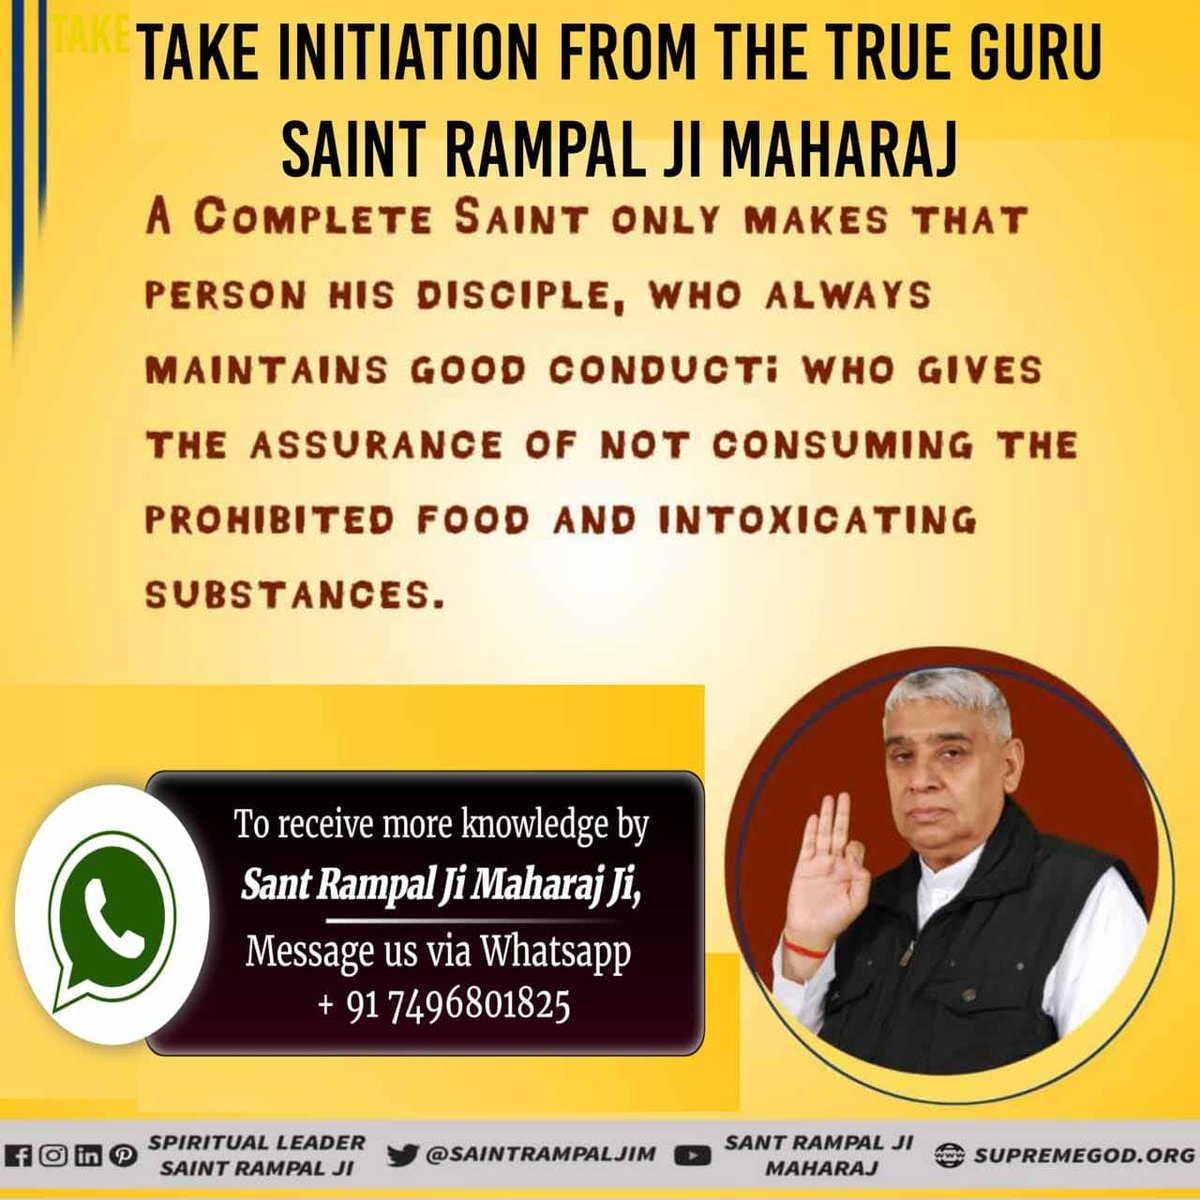 #Who_Is_TrueGuru  Take initiation form the True Guru Saint Rampal Ji Maharaj @SaintRampalJiM and get escaped from the cycle of birth and death <br>http://pic.twitter.com/l8mBz53nHB